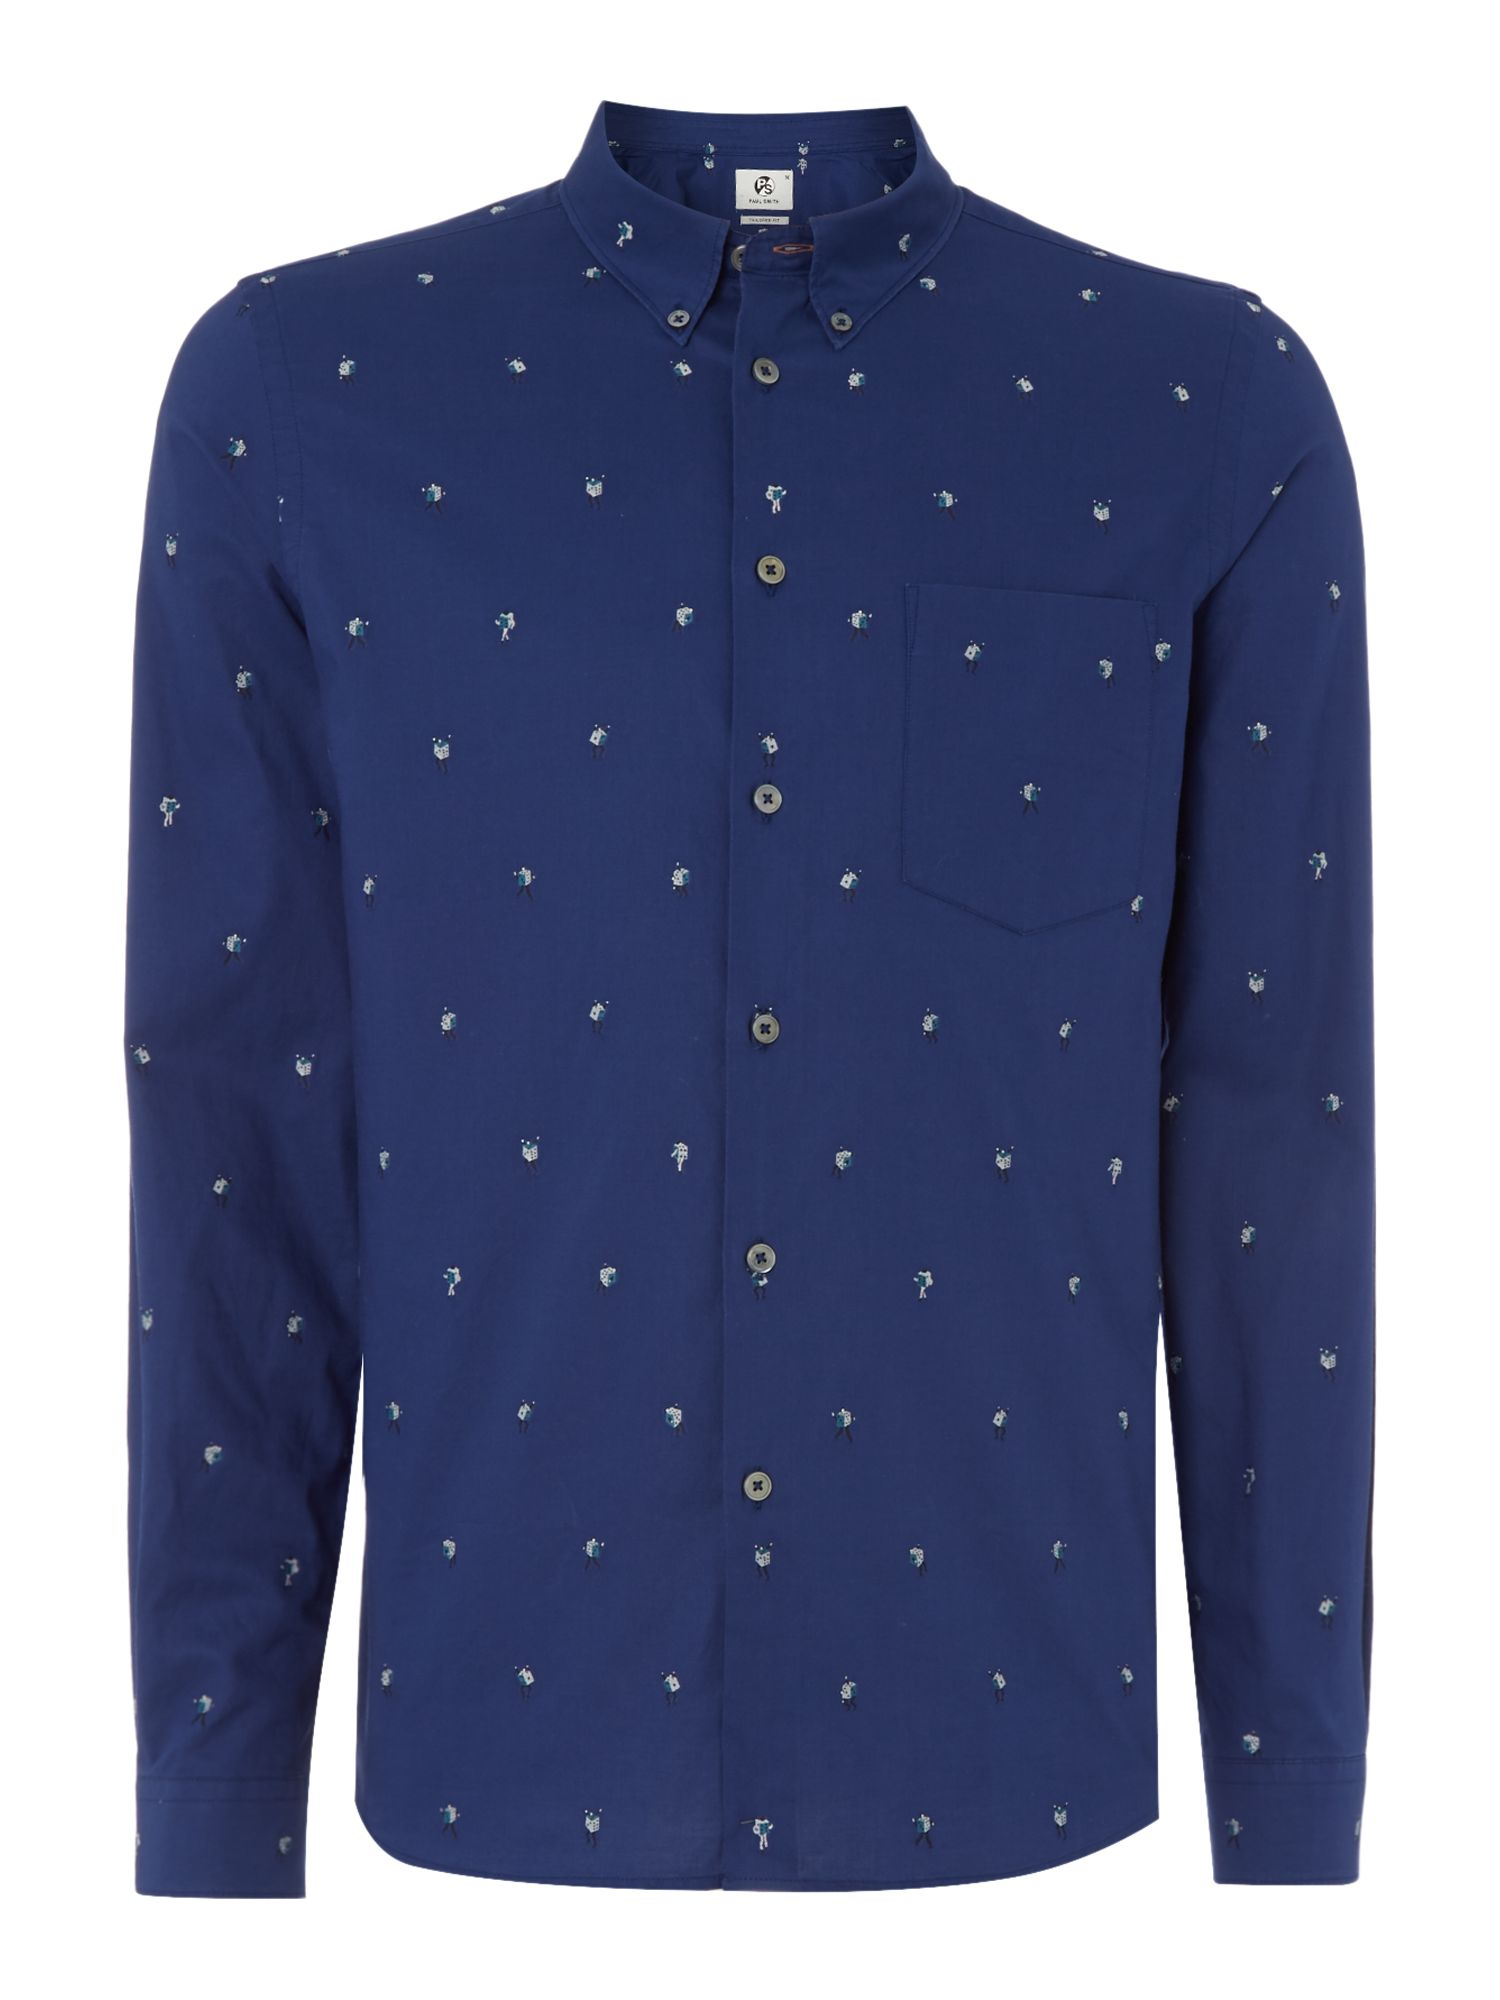 PS by Paul Smith Men's PS By Paul Smith Tailored fit dice men printed shirt, Navy